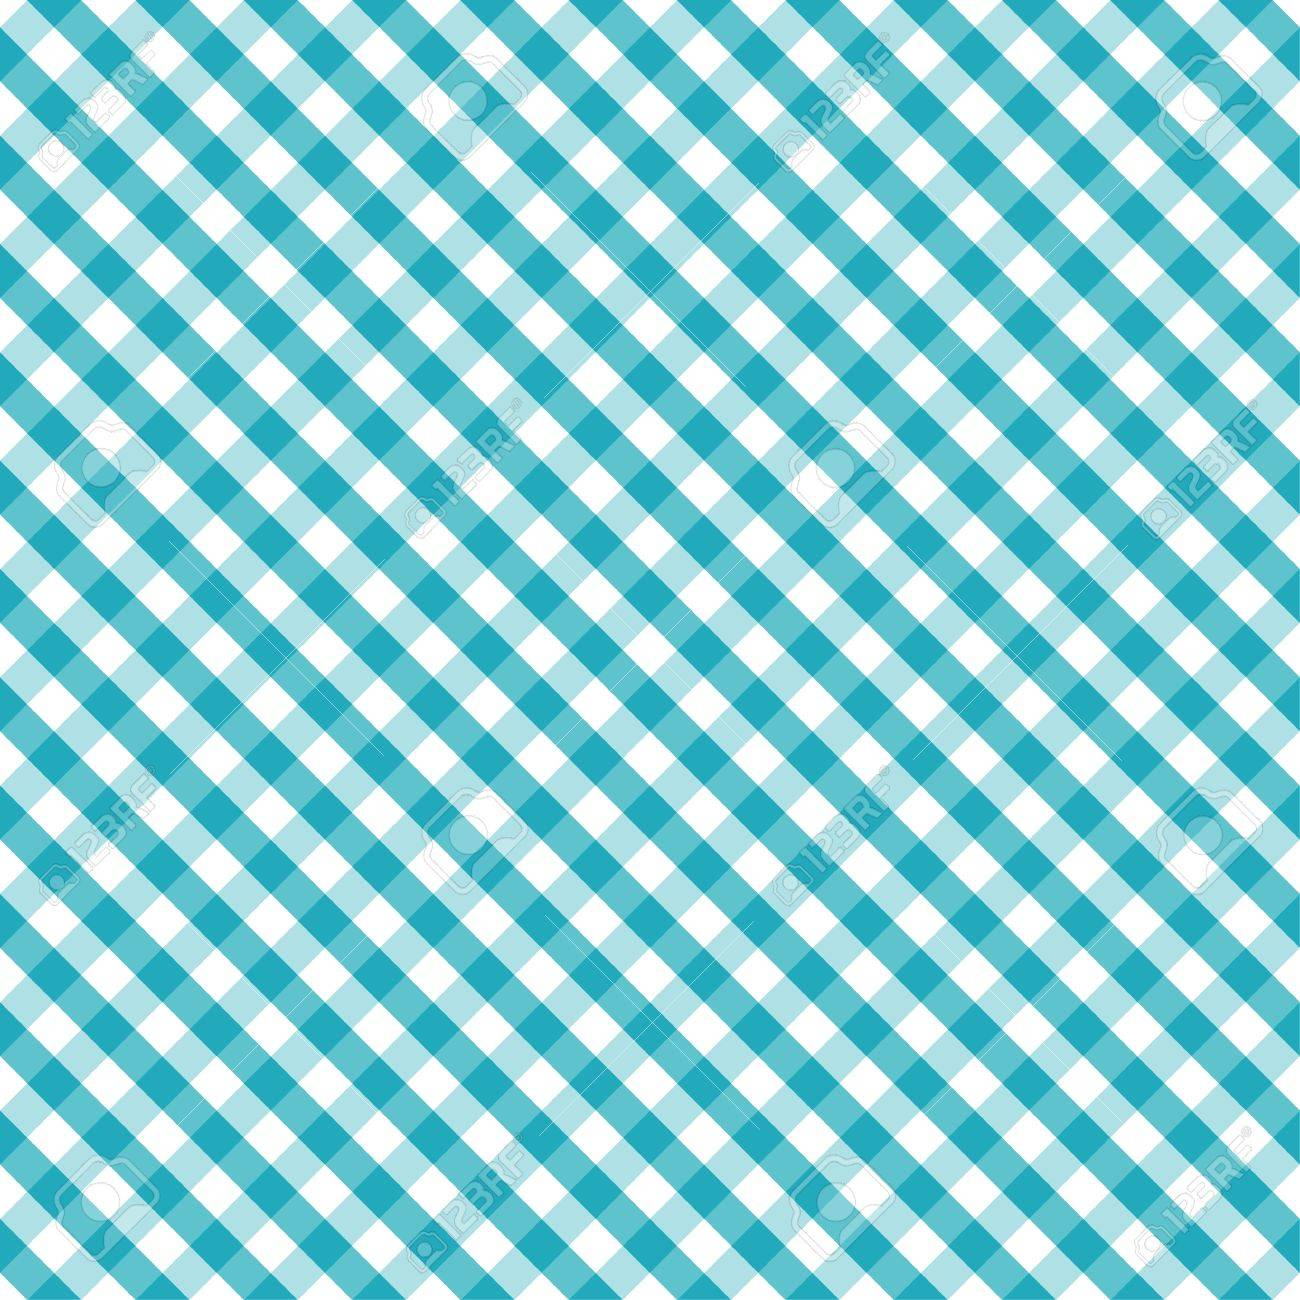 Seamless Cross Weave Gingham Pattern in aqua and white, includes pattern swatch that will seamlessly fill any shape - 14202190